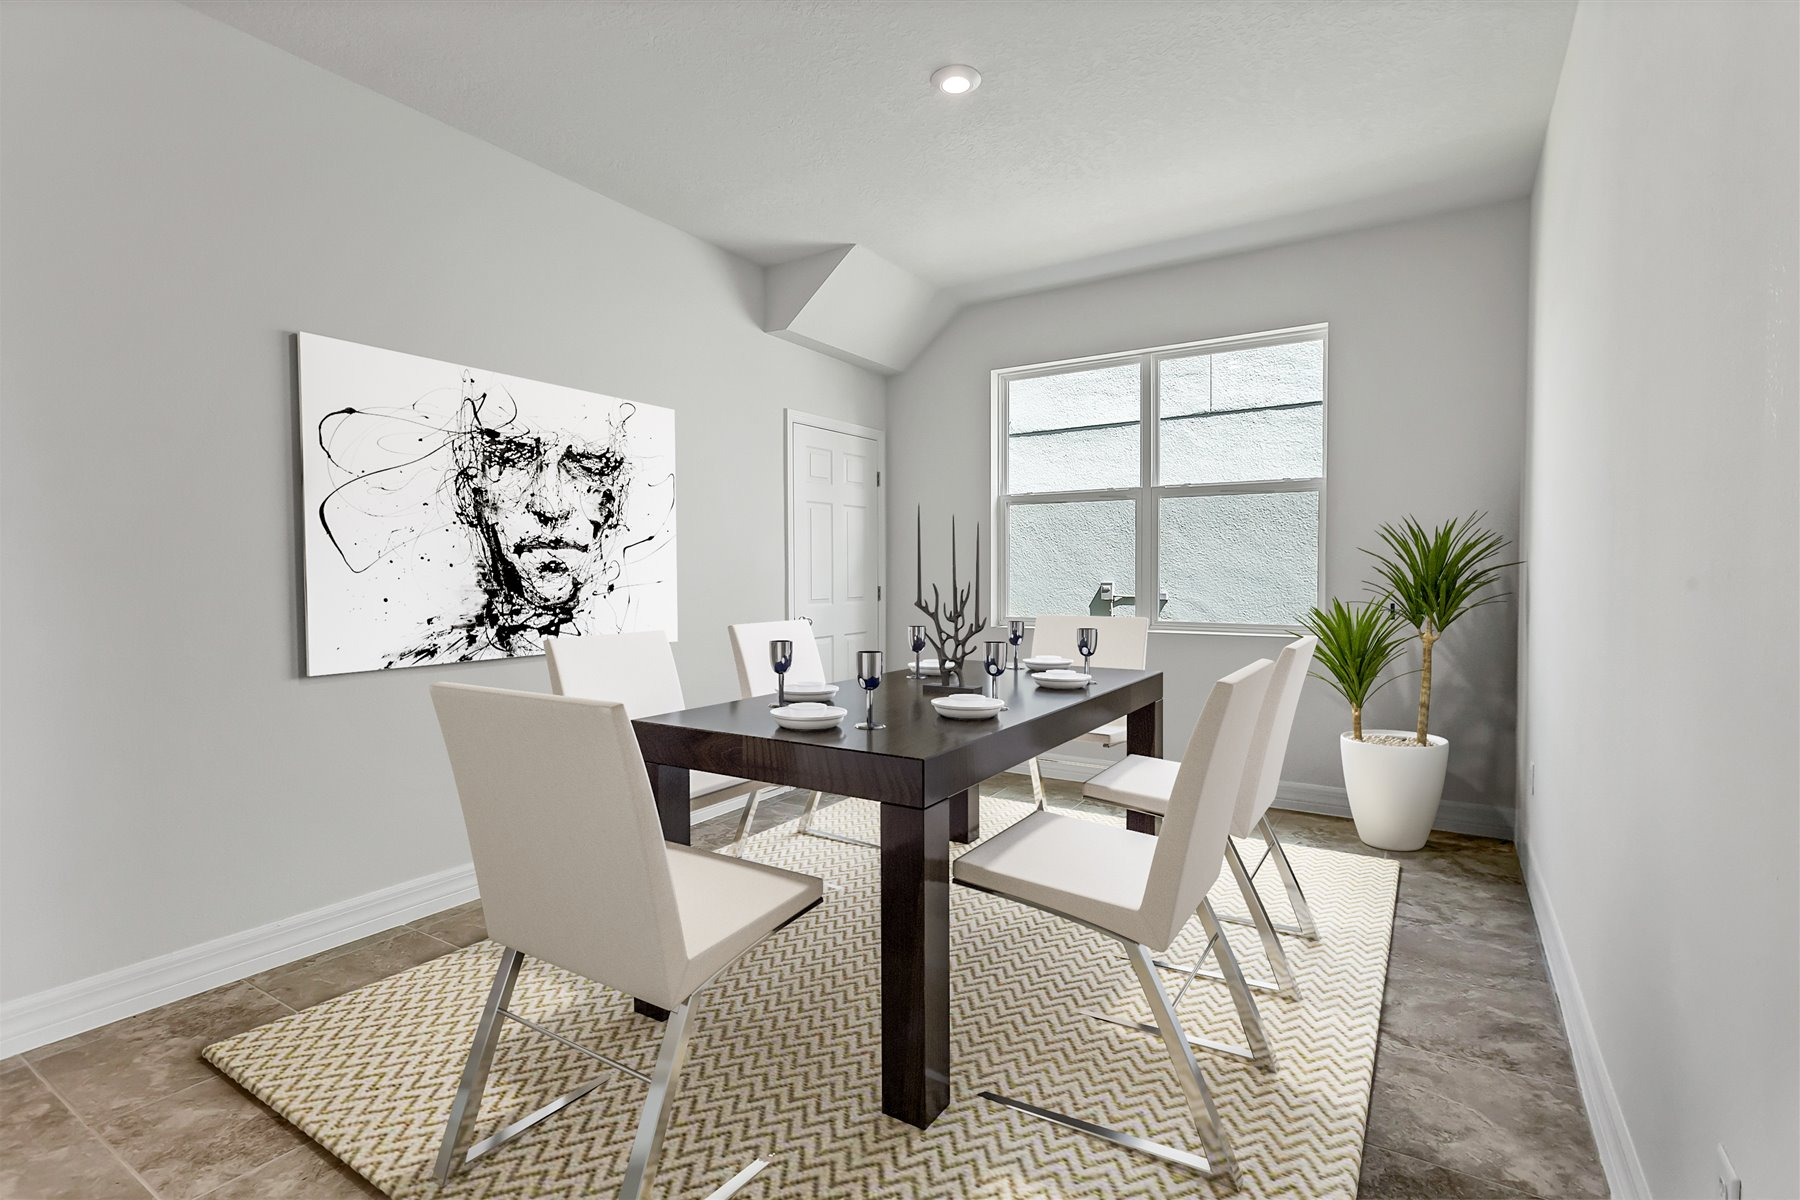 Newport Plan Dining at Meridian Parks in Orlando Florida by Mattamy Homes